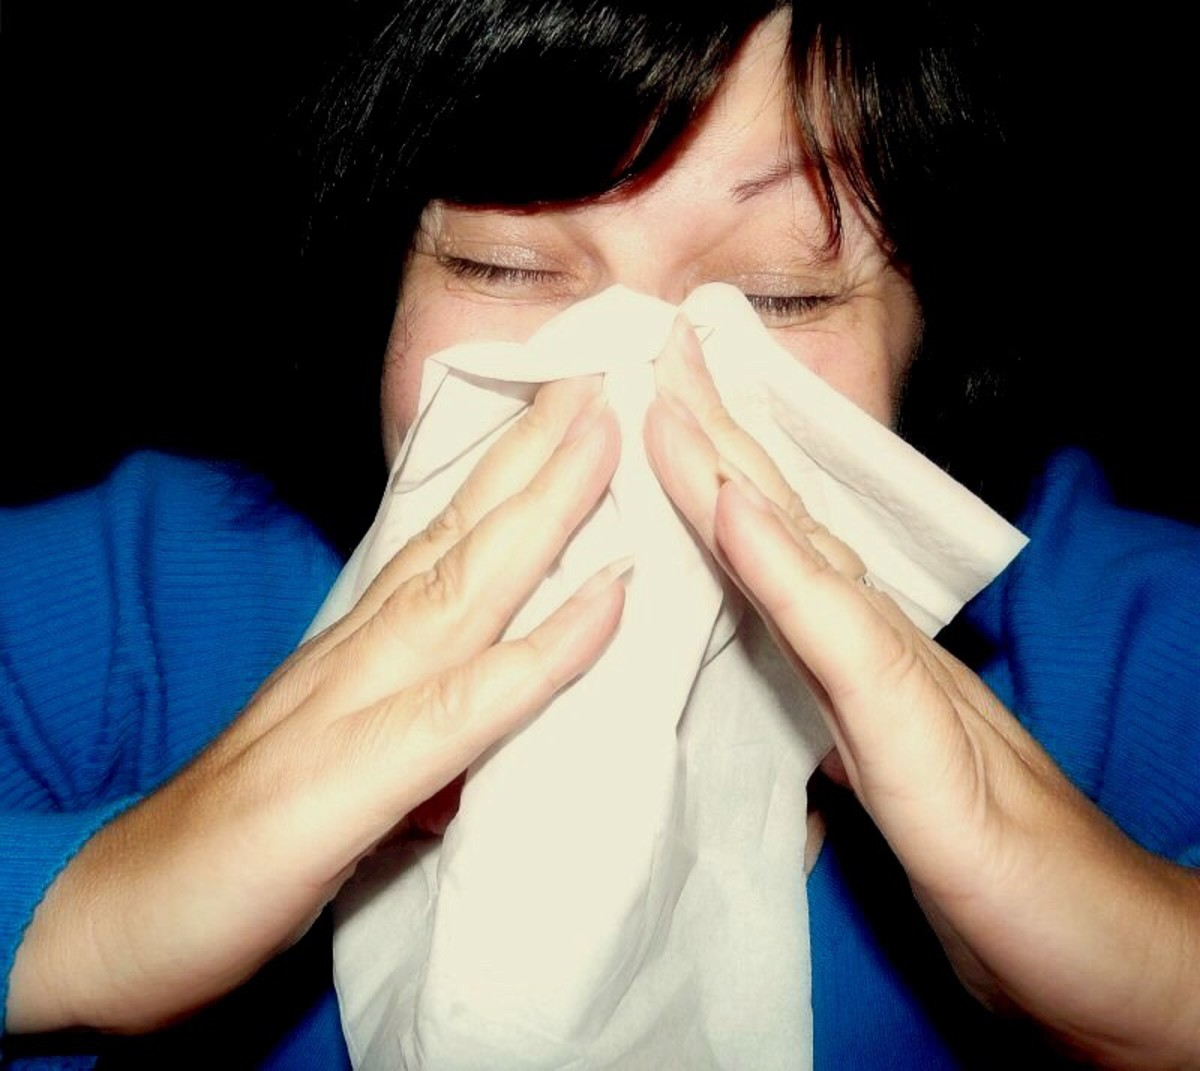 Sneezes and Sneezing: Causes, Facts, Myths, and Mysteries